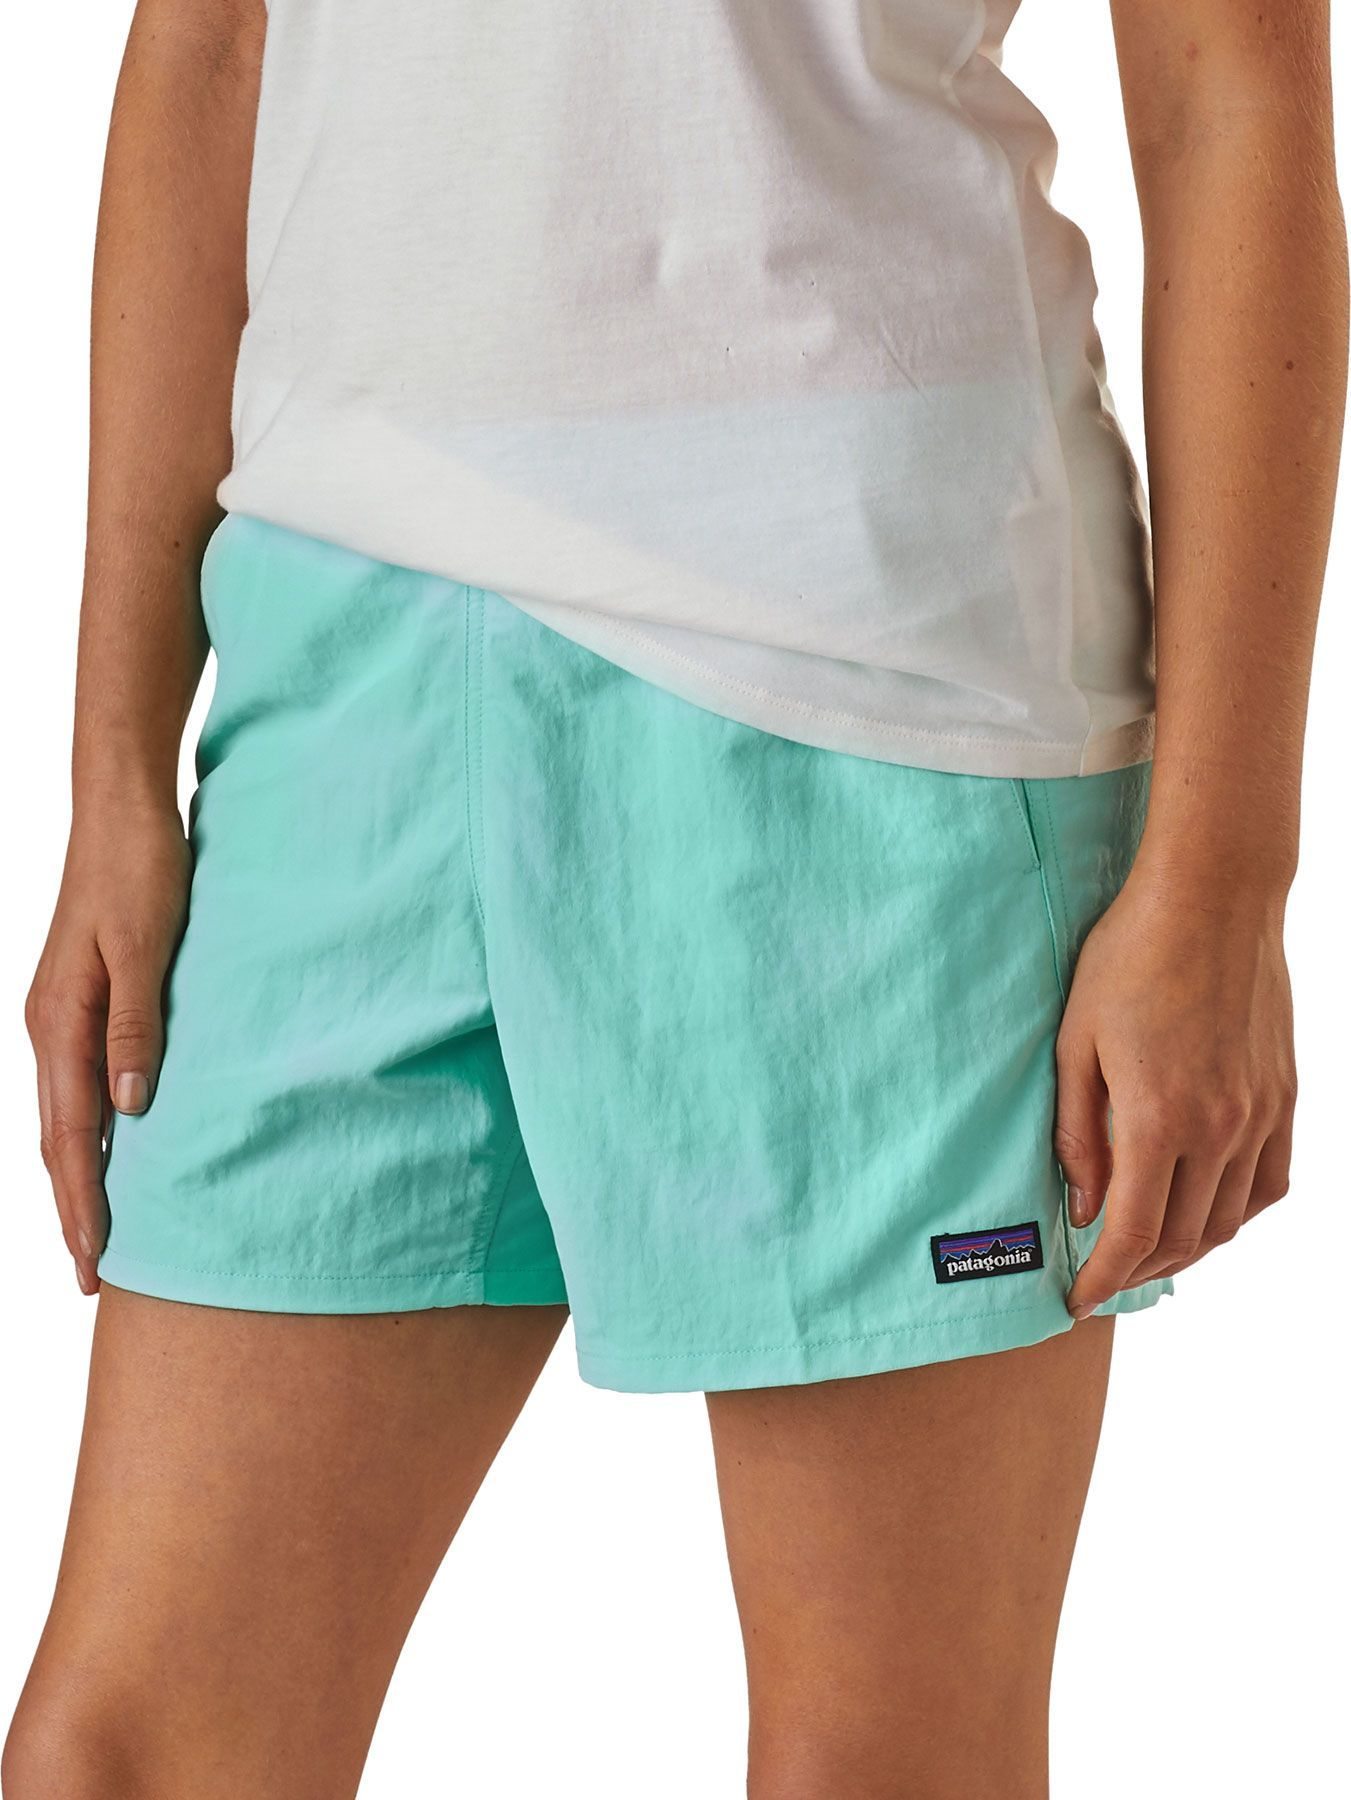 d6e7d1bfe0 Patagonia Women's Baggies Shorts in 2019 | Products | Board shorts ...